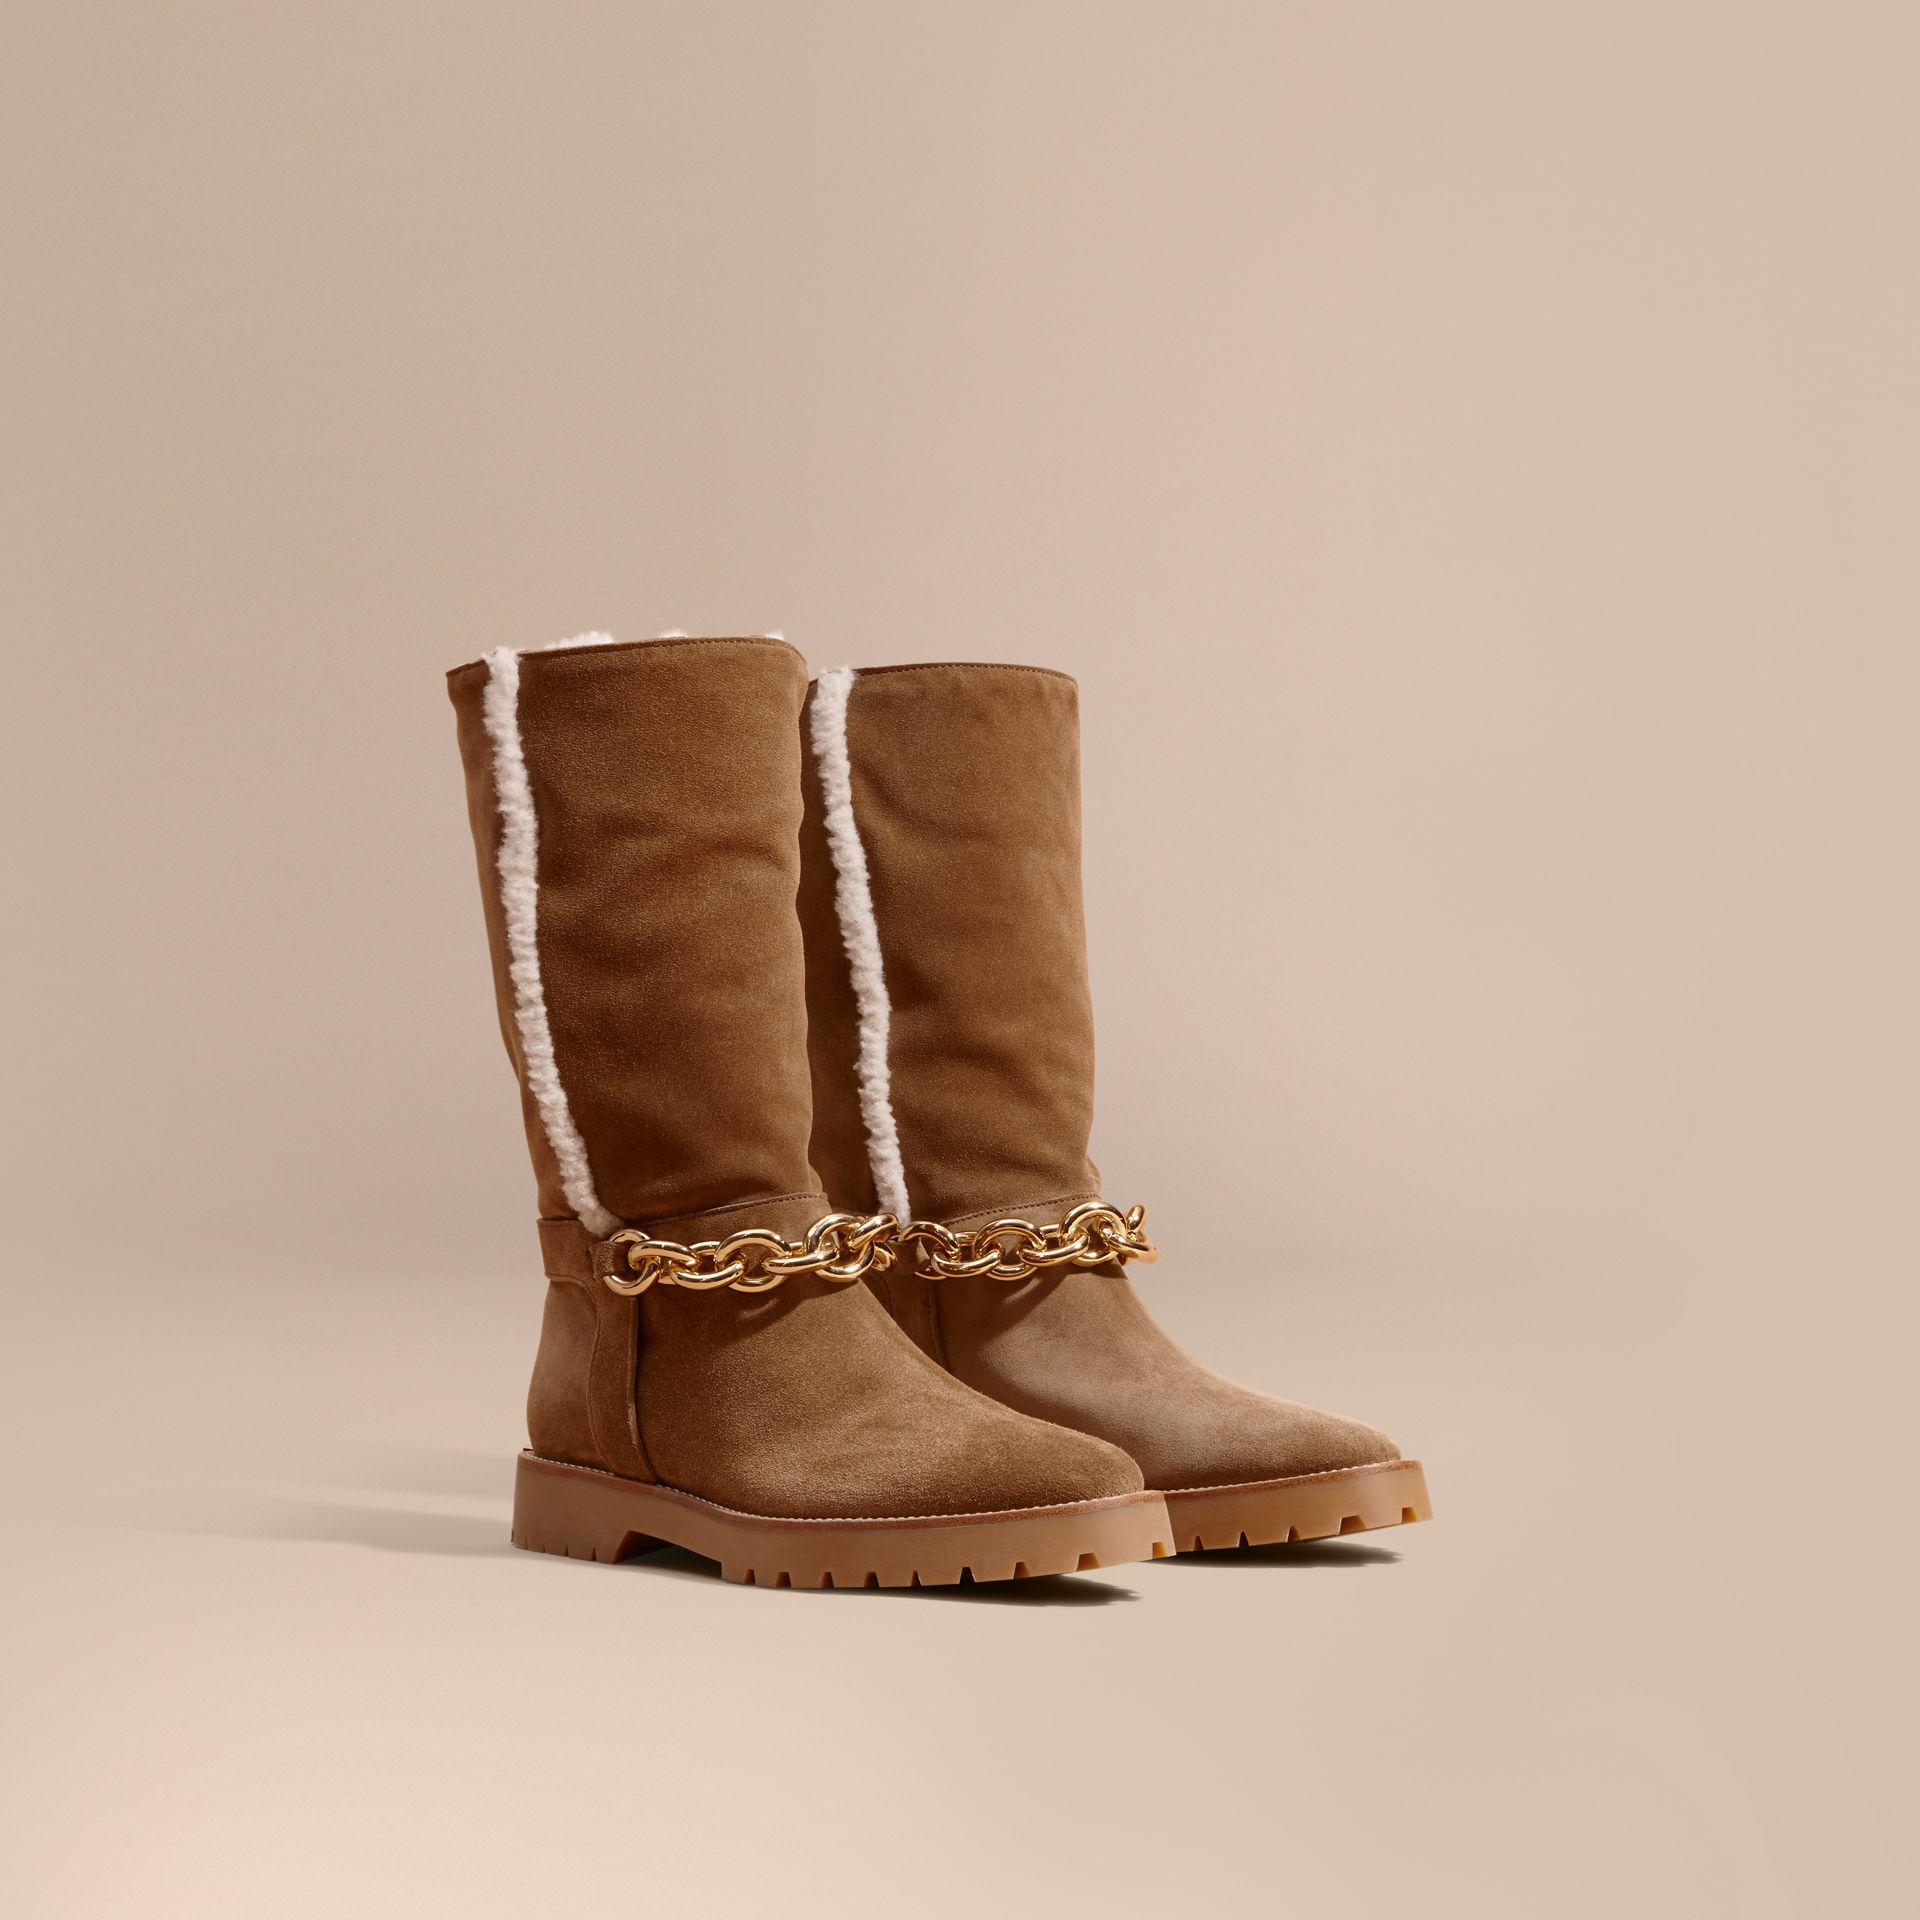 Light oak brown Chain Detail Shearling and Suede Boots - gallery image 1